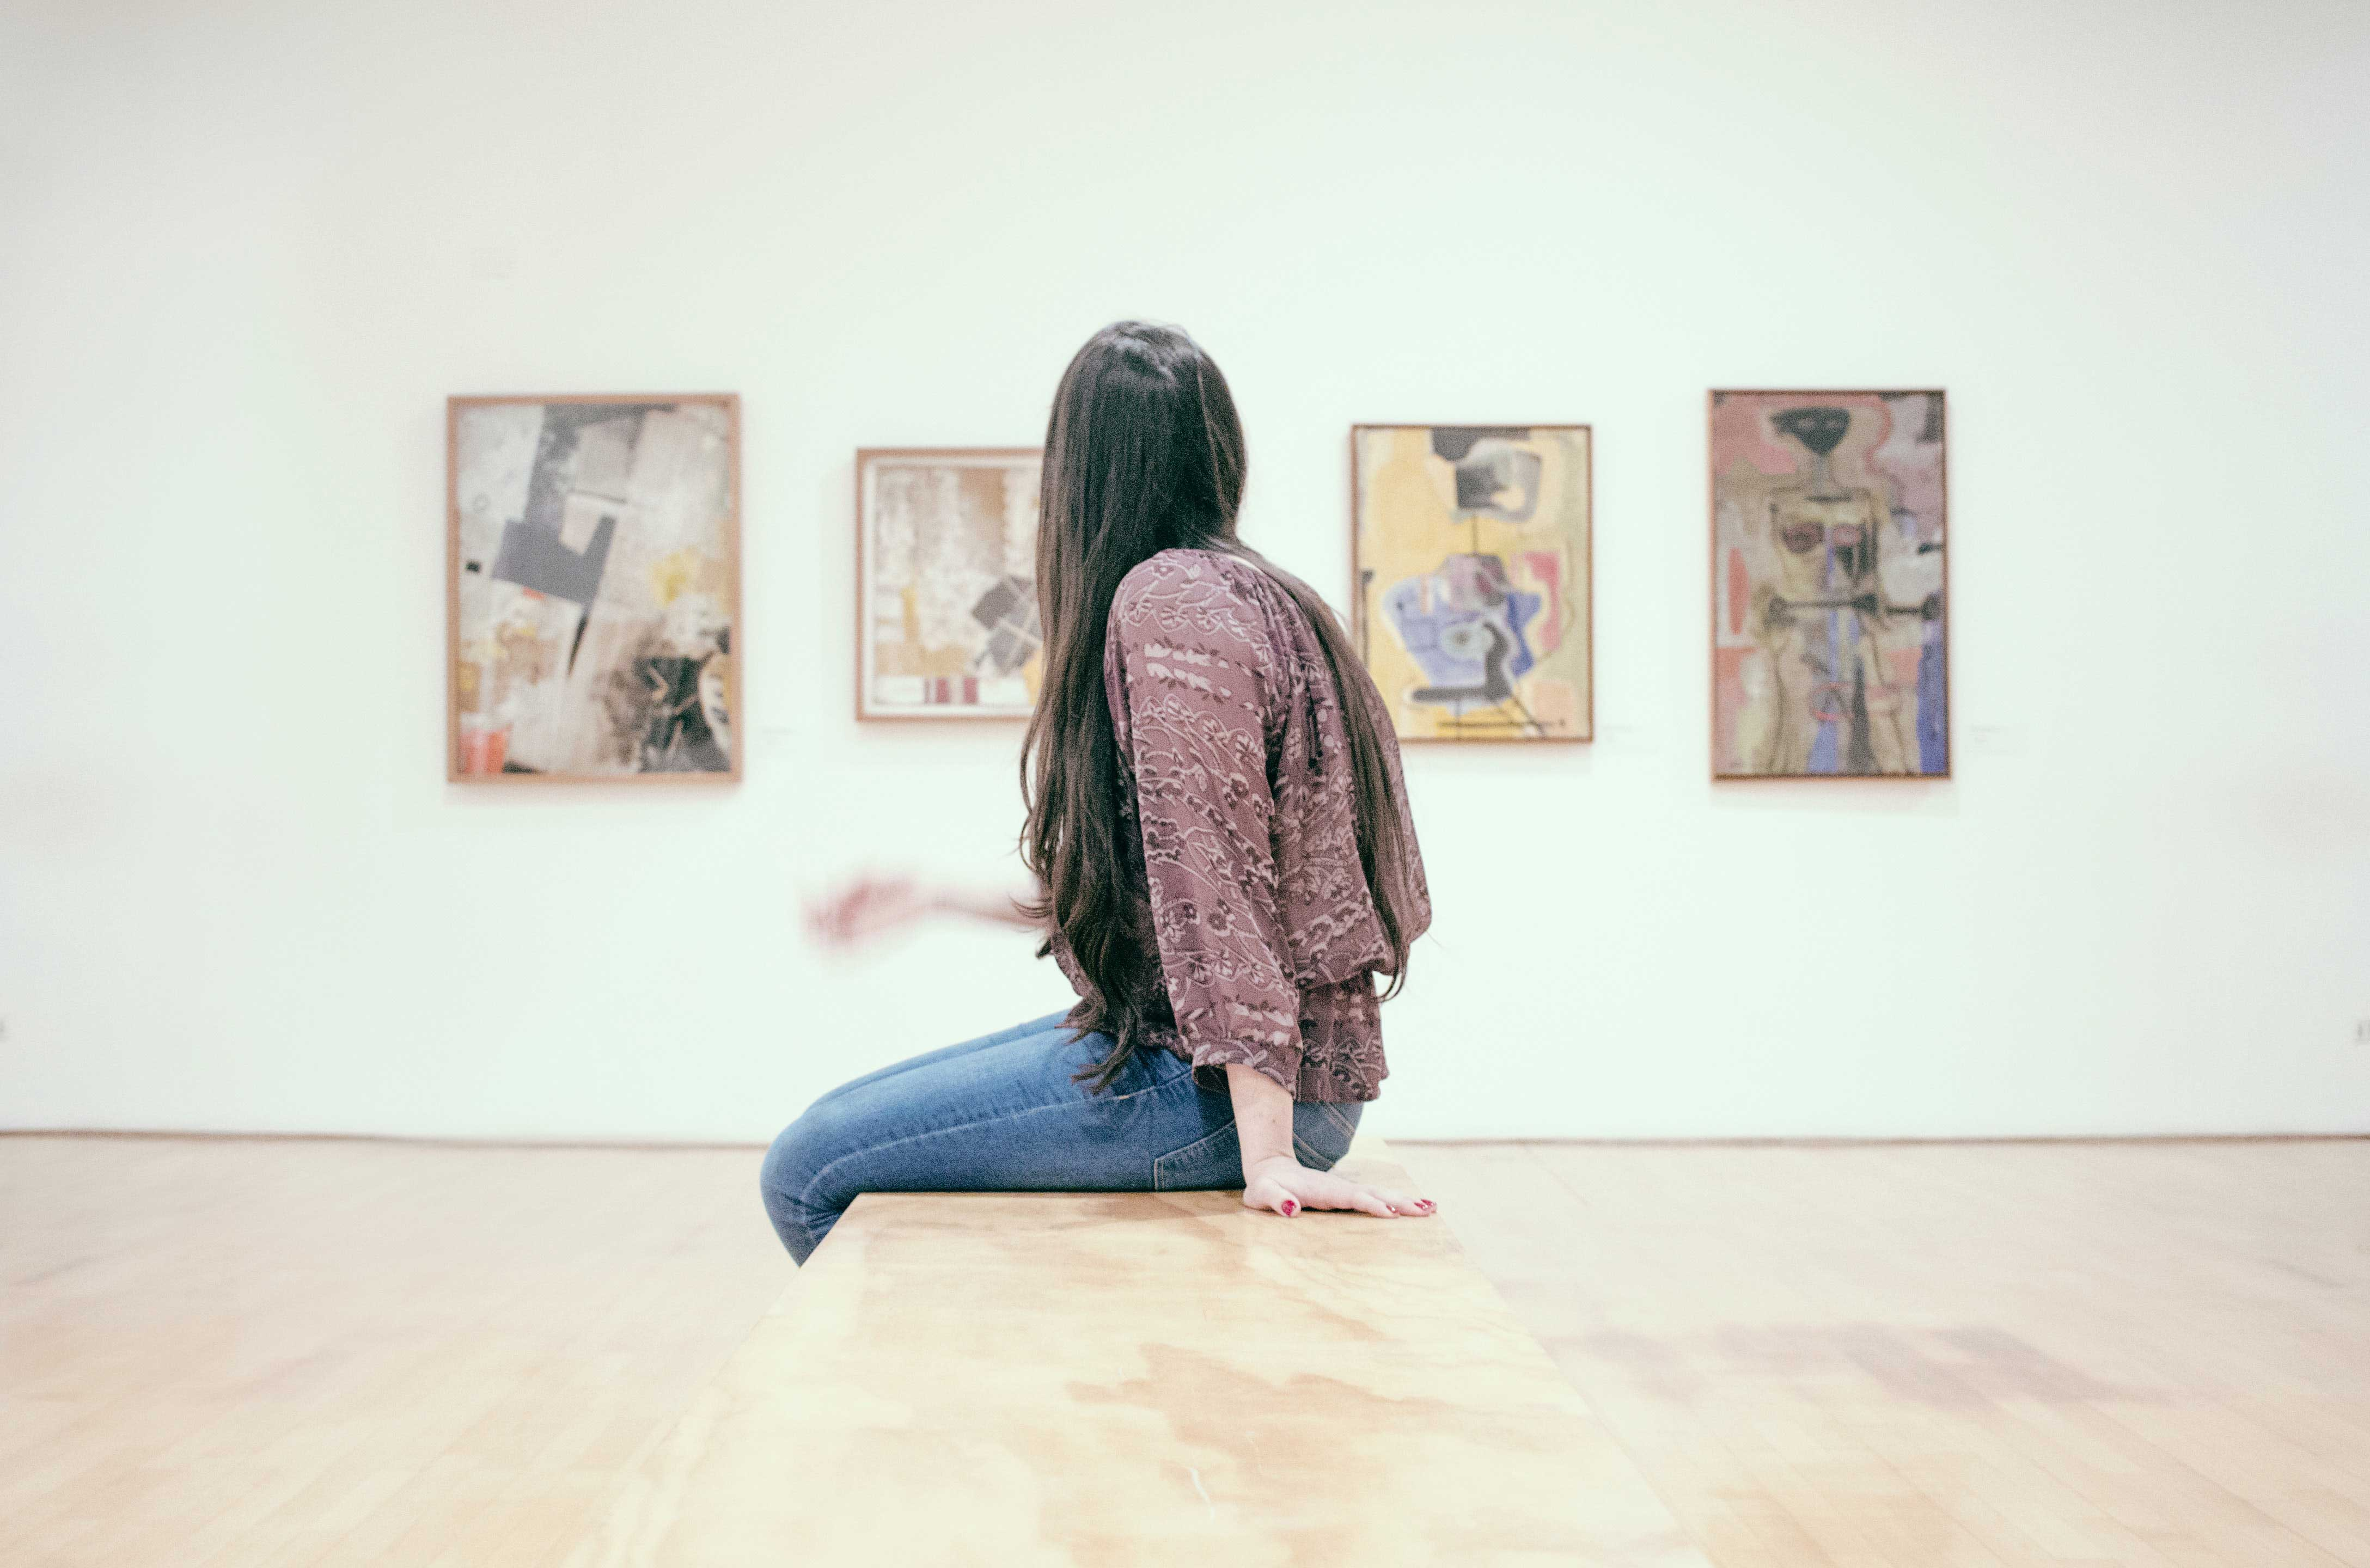 An artlover looking at paintings in an exhibition space